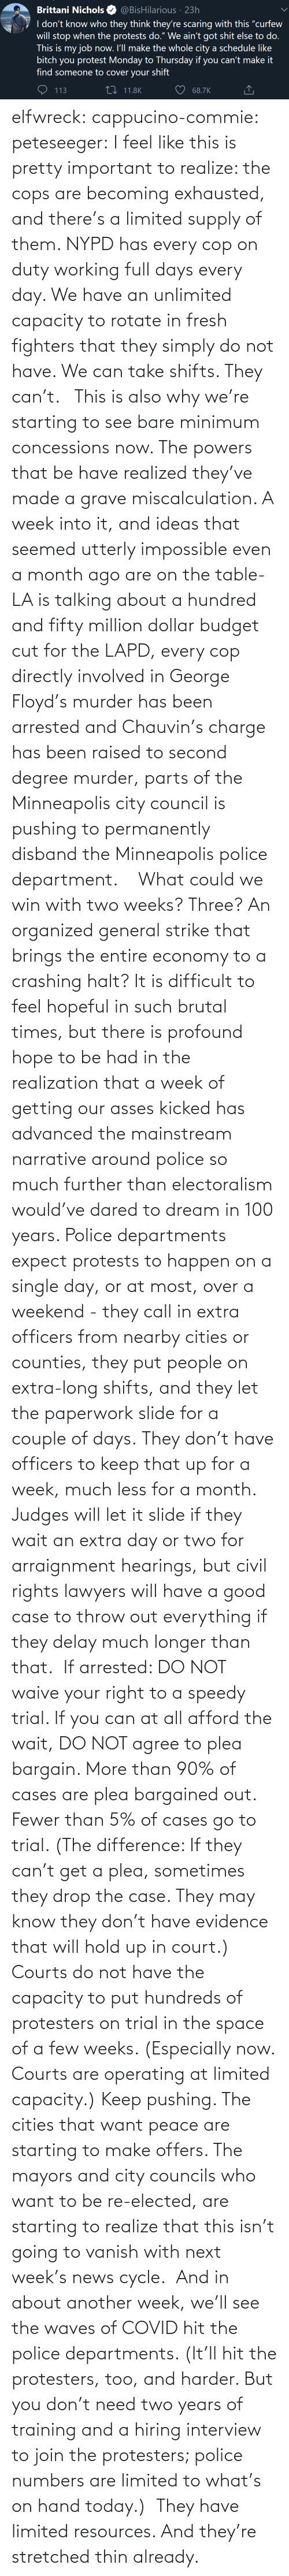 Going To: elfwreck:  cappucino-commie:  peteseeger: I feel like this is pretty important to realize: the cops are becoming exhausted, and there's a limited supply of them. NYPD has every cop on duty working full days every day. We have an unlimited capacity to rotate in fresh fighters that they simply do not have. We can take shifts. They can't.    This is also why we're starting to see bare minimum concessions now. The powers that be have realized they've made a grave miscalculation. A week into it, and ideas that seemed utterly impossible even a month ago are on the table- LA is talking about a hundred and fifty million dollar budget cut for the LAPD, every cop directly involved in George Floyd's murder has been arrested and Chauvin's charge has been raised to second degree murder, parts of the Minneapolis city council is pushing to permanently disband the Minneapolis police department.    What could we win with two weeks? Three? An organized general strike that brings the entire economy to a crashing halt? It is difficult to feel hopeful in such brutal times, but there is profound hope to be had in the realization that a week of getting our asses kicked has advanced the mainstream narrative around police so much further than electoralism would've dared to dream in 100 years.   Police departments expect protests to happen on a single day, or at most, over a weekend - they call in extra officers from nearby cities or counties, they put people on extra-long shifts, and they let the paperwork slide for a couple of days. They don't have officers to keep that up for a week, much less for a month. Judges will let it slide if they wait an extra day or two for arraignment hearings, but civil rights lawyers will have a good case to throw out everything if they delay much longer than that.  If arrested: DO NOT waive your right to a speedy trial. If you can at all afford the wait, DO NOT agree to plea bargain. More than 90% of cases are plea bargained out. Fewer than 5% of cases go to trial. (The difference: If they can't get a plea, sometimes they drop the case. They may know they don't have evidence that will hold up in court.) Courts do not have the capacity to put hundreds of protesters on trial in the space of a few weeks. (Especially now. Courts are operating at limited capacity.) Keep pushing. The cities that want peace are starting to make offers. The mayors and city councils who want to be re-elected, are starting to realize that this isn't going to vanish with next week's news cycle.  And in about another week, we'll see the waves of COVID hit the police departments. (It'll hit the protesters, too, and harder. But you don't need two years of training and a hiring interview to join the protesters; police numbers are limited to what's on hand today.)  They have limited resources. And they're stretched thin already.